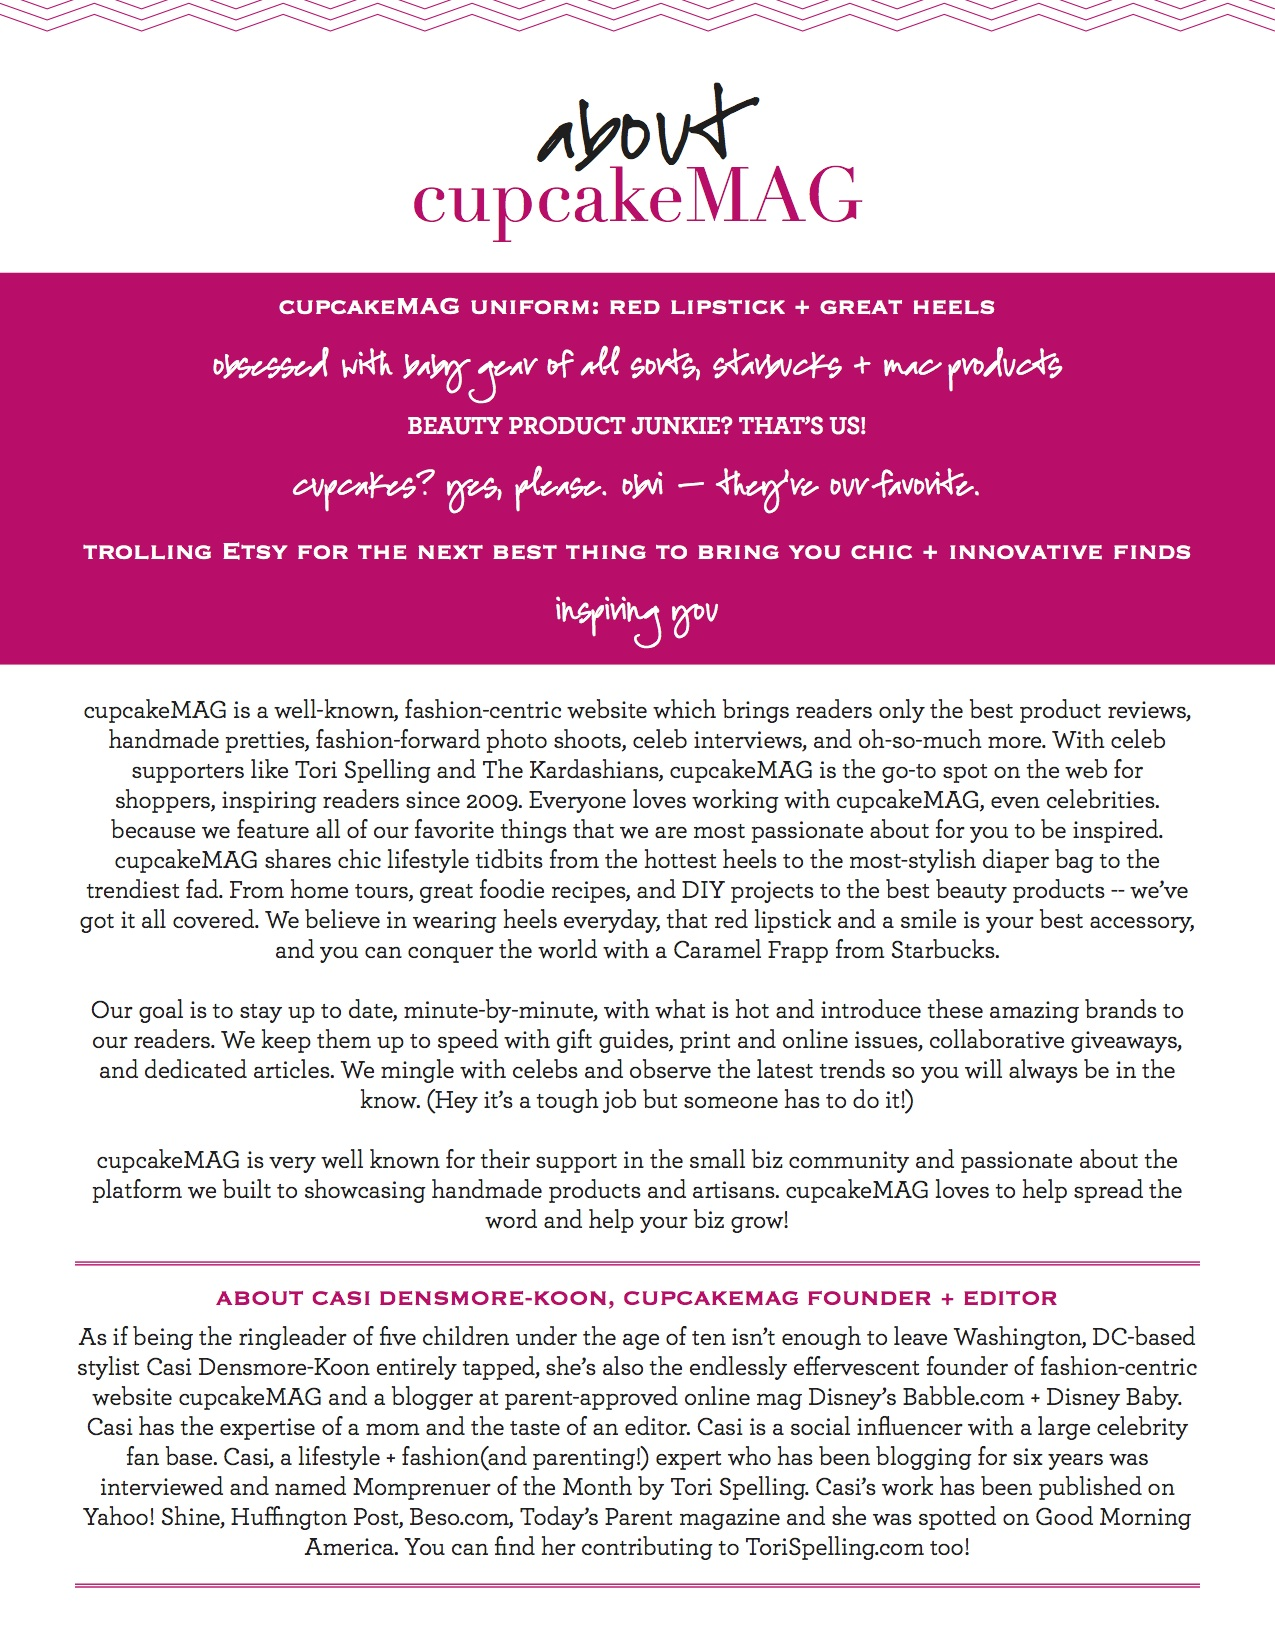 cupcakeMAG media kit about